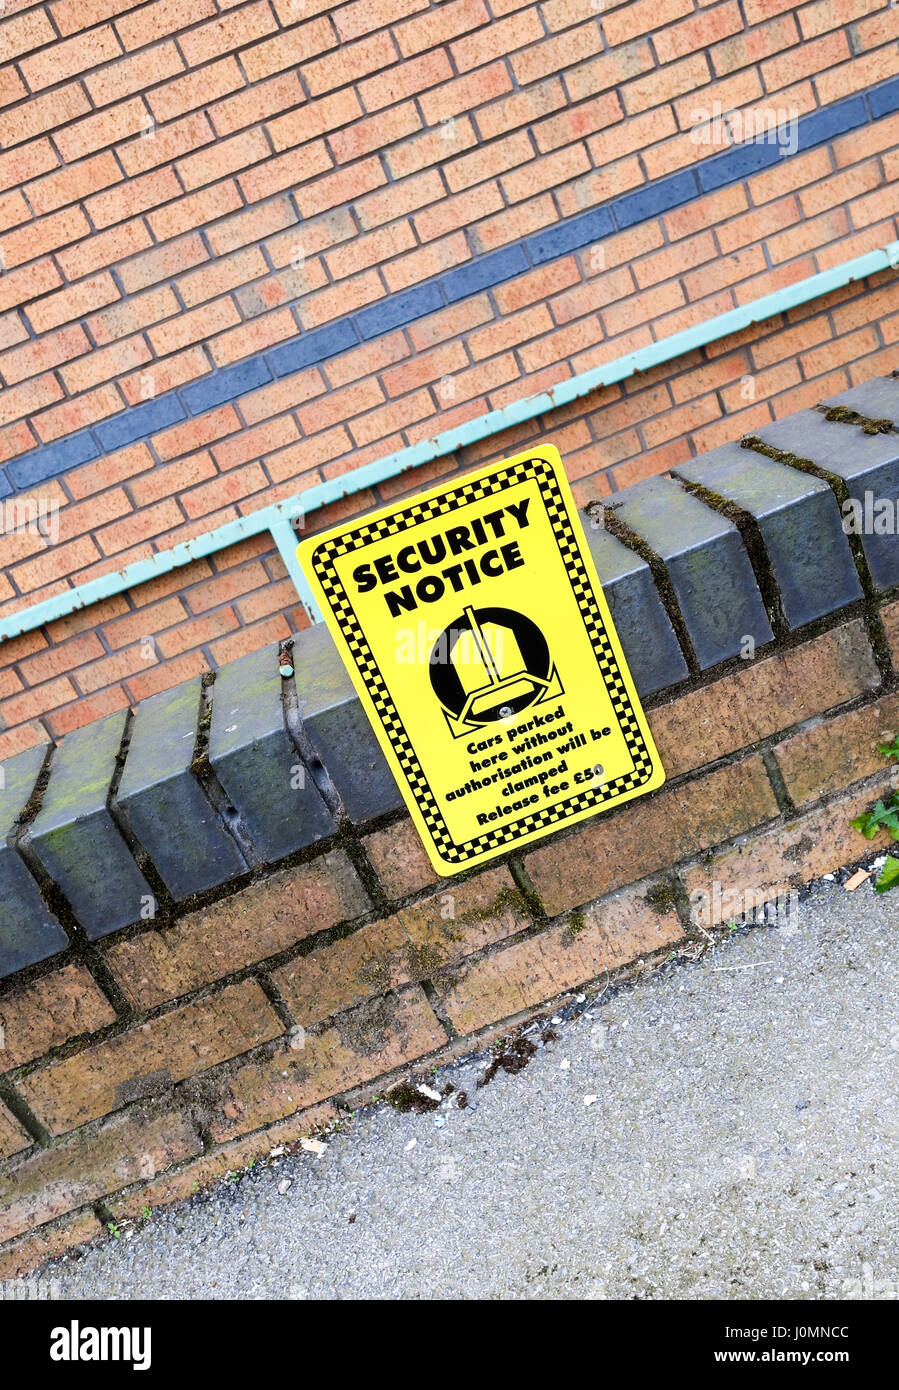 A yellow warning sign saying Cars parked here without authorisation will be clamped, release fee £50 - Stock Image